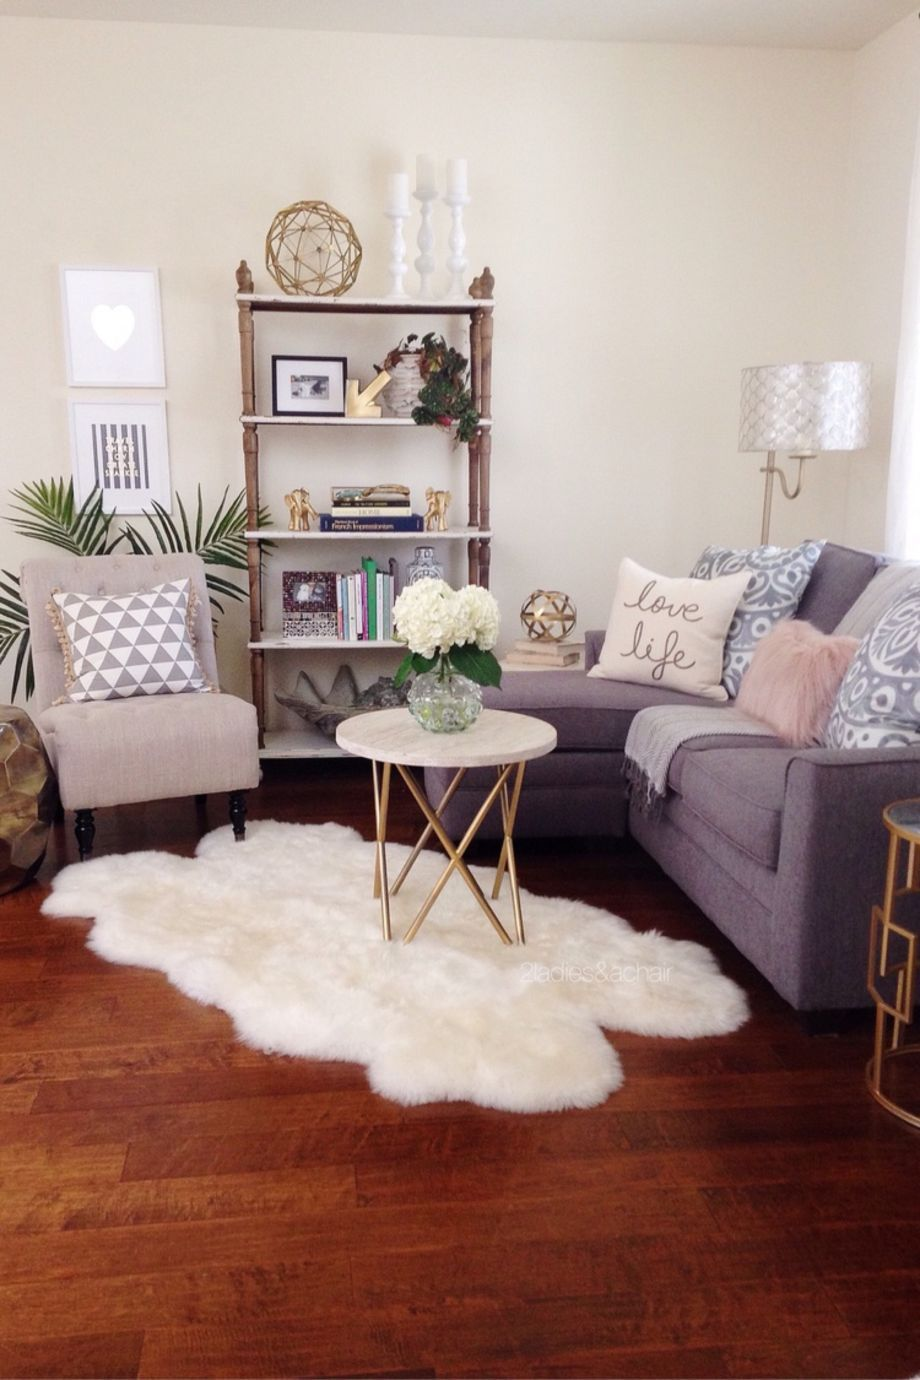 Pin by Lydia Lucas on New Place  First apartment